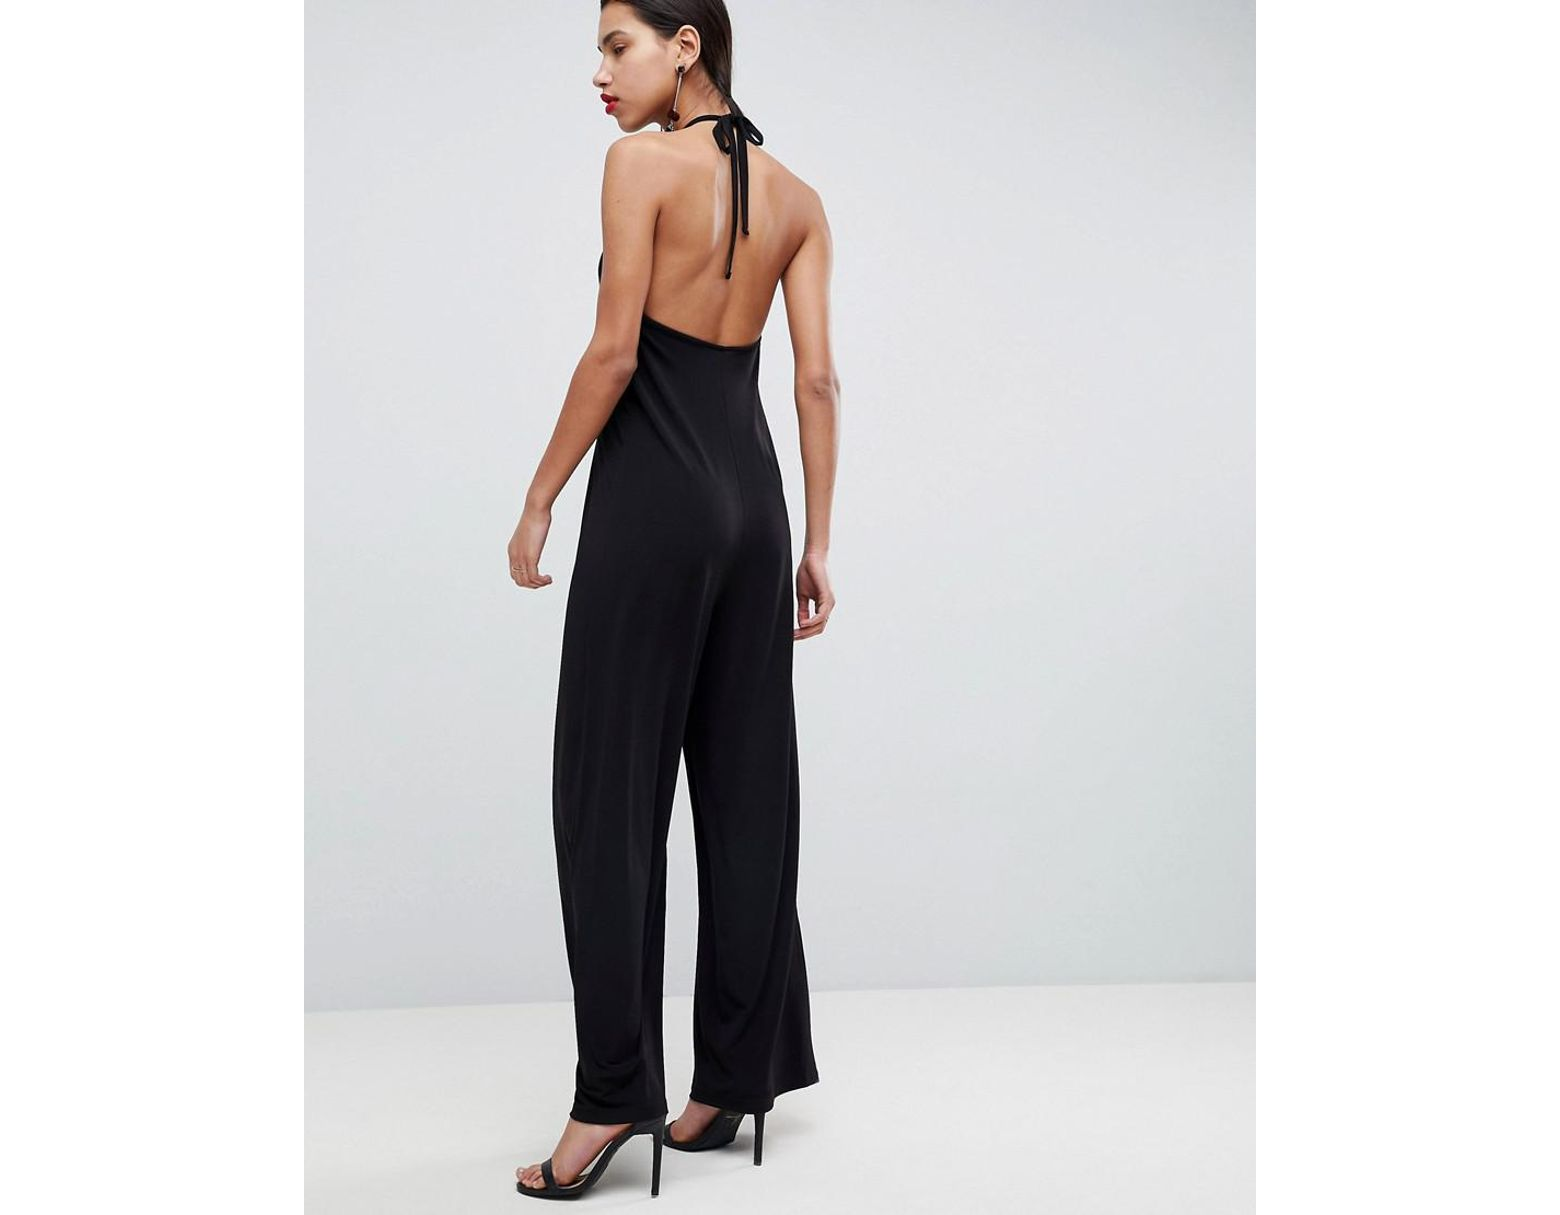 6ec6c30c1630 ASOS Asos Slinky Jumpsuit With Gathered Waist in Black - Lyst